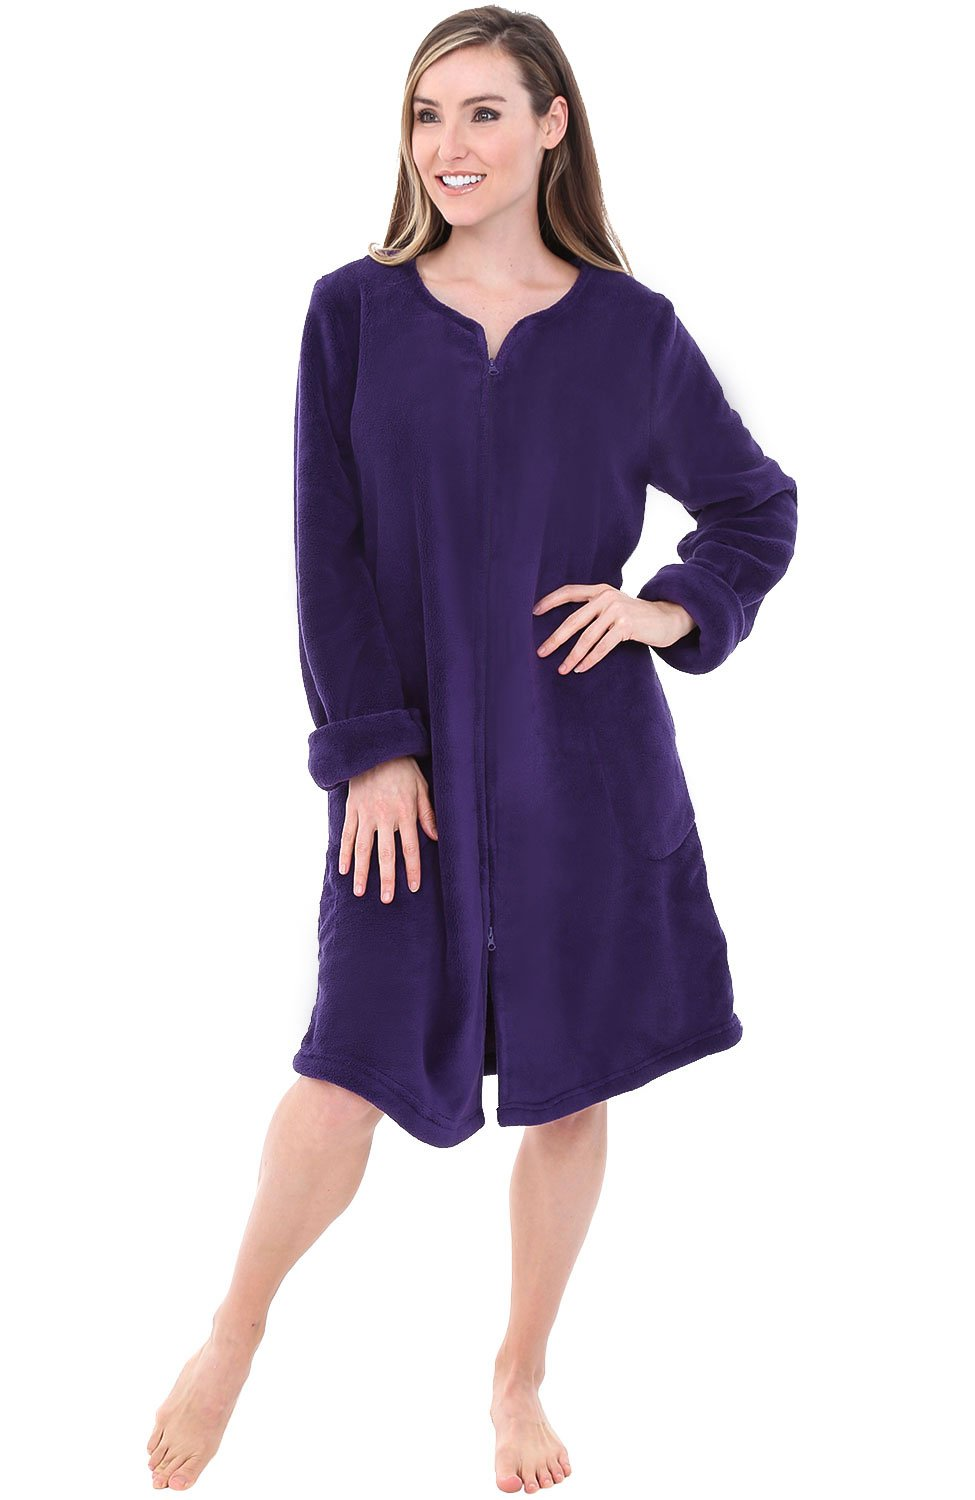 Alexander Del Rossa Womens Fleece Robe, Mid-Length Zip-Front Bathrobe, Large Purple (A0309PURLG)